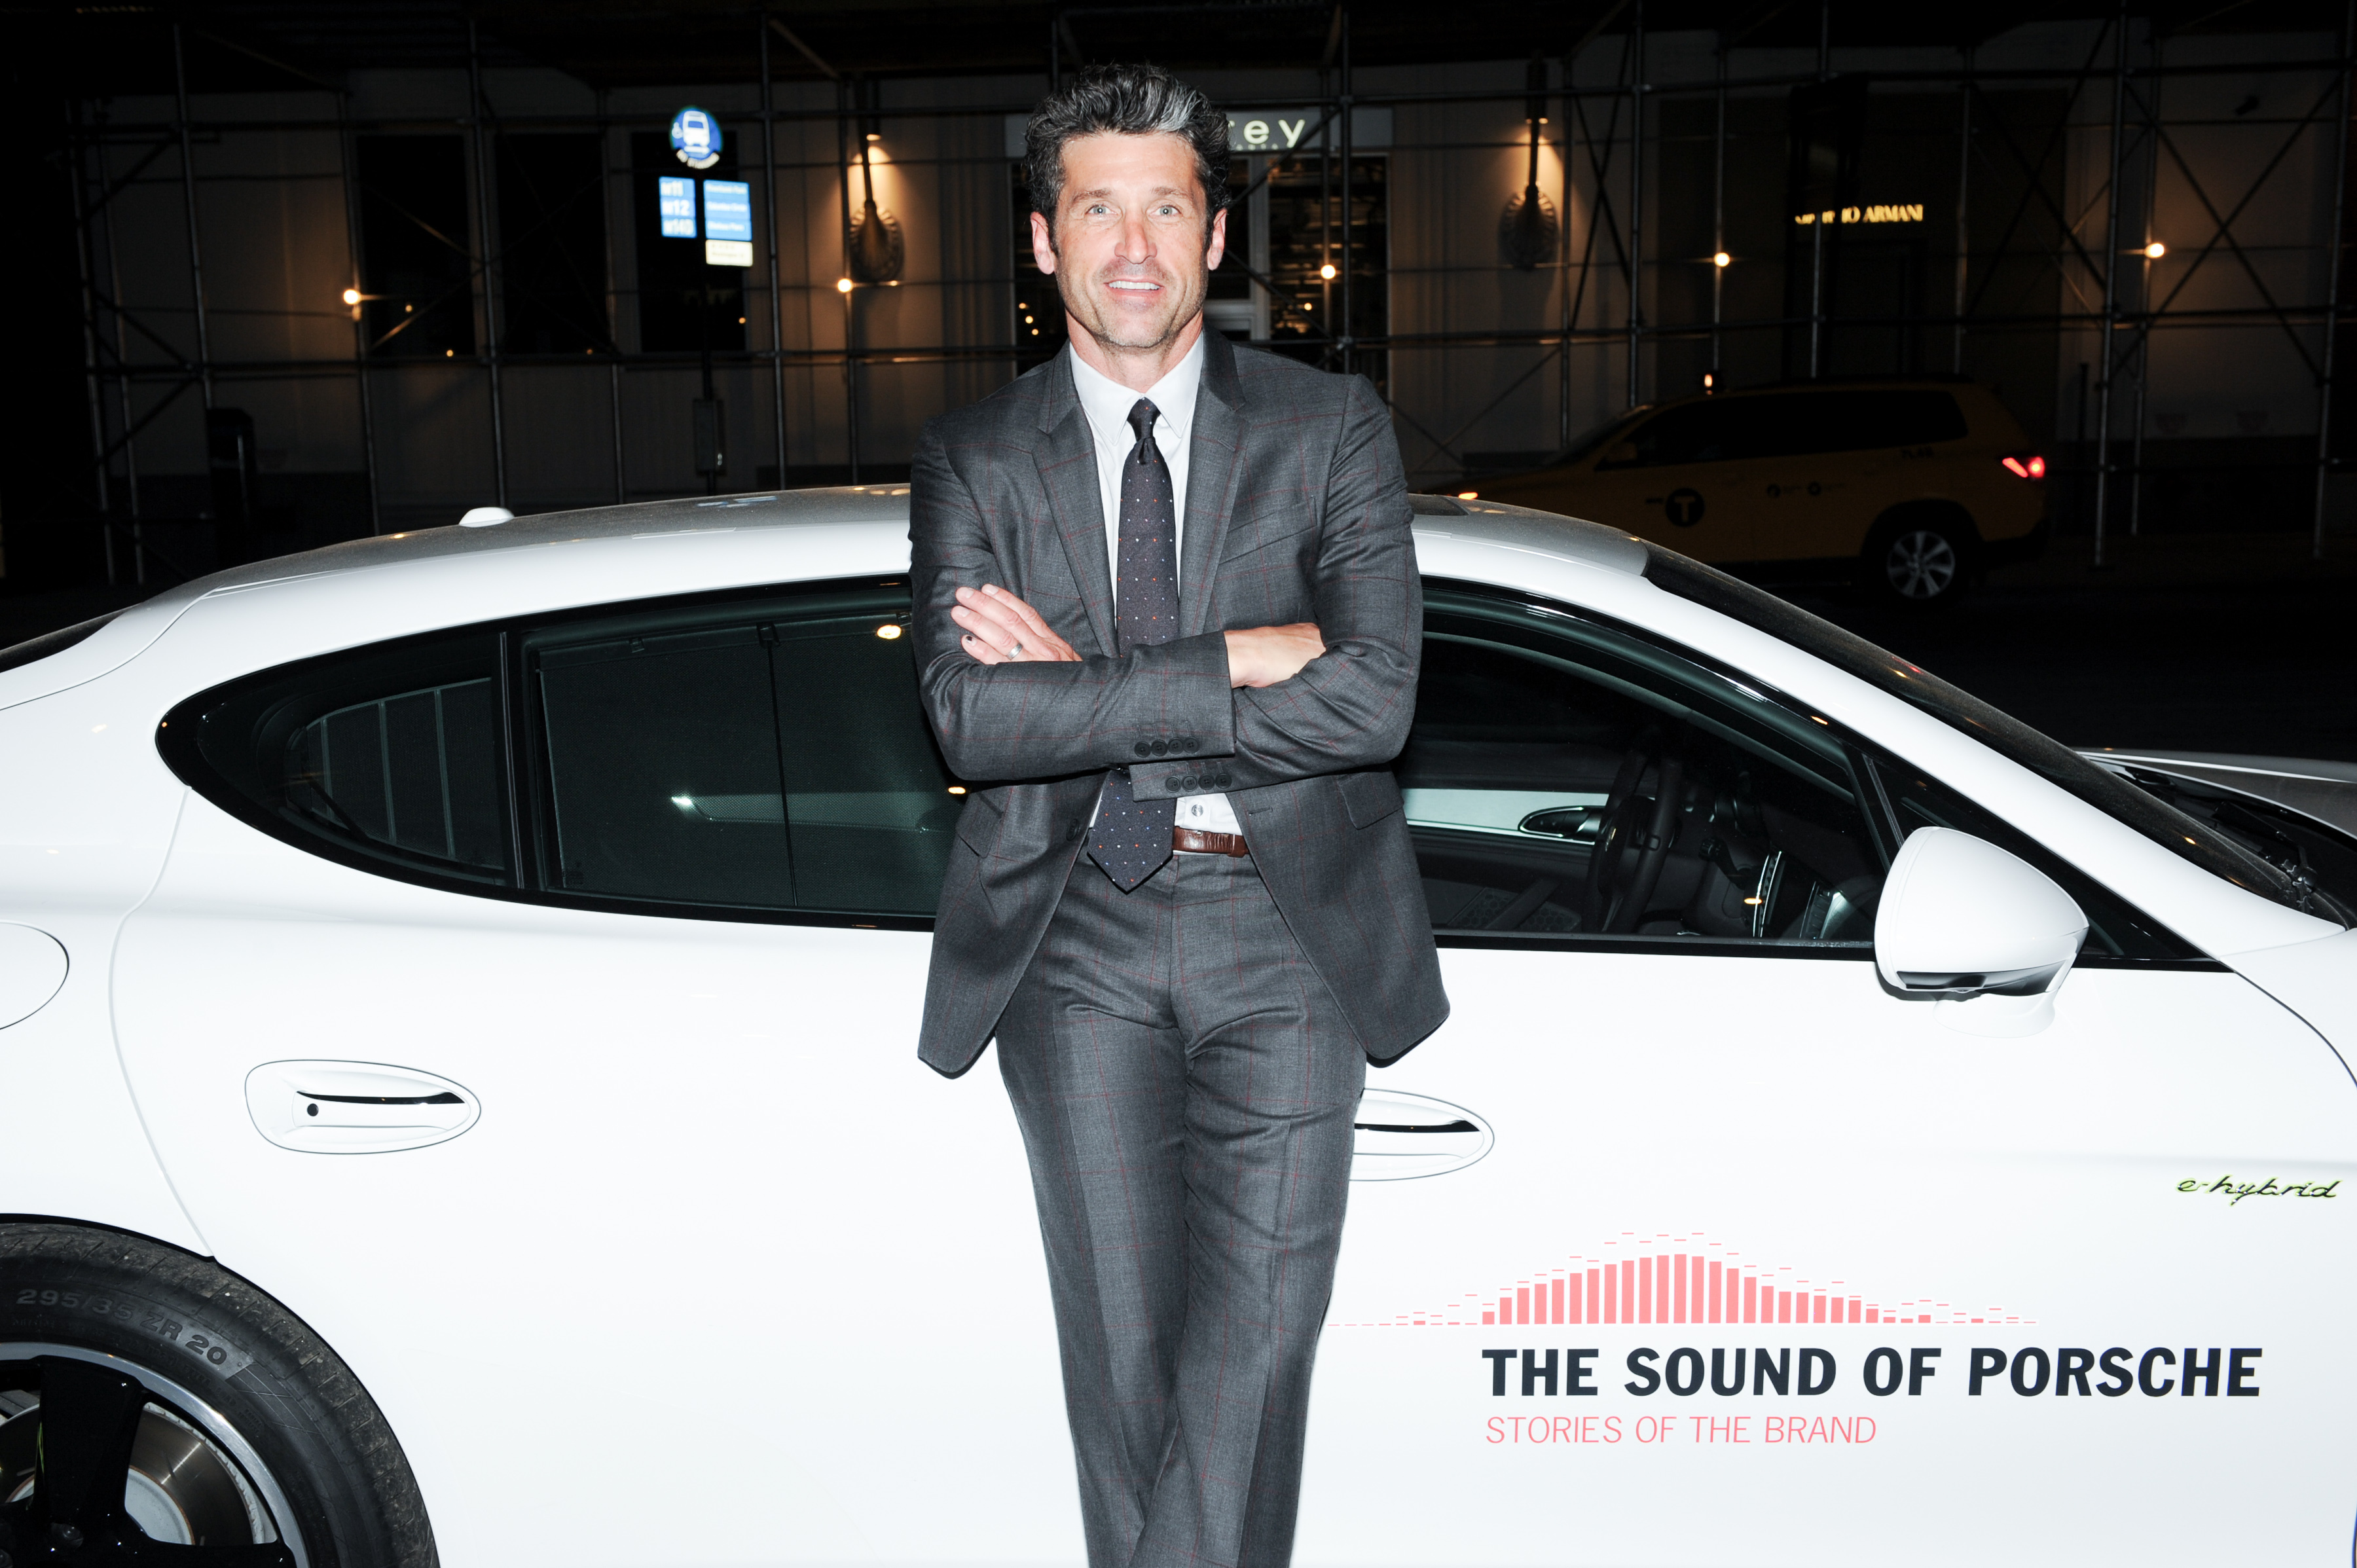 Patrick Dempsey Talks Porsche Formula 1 And How To Dominate The